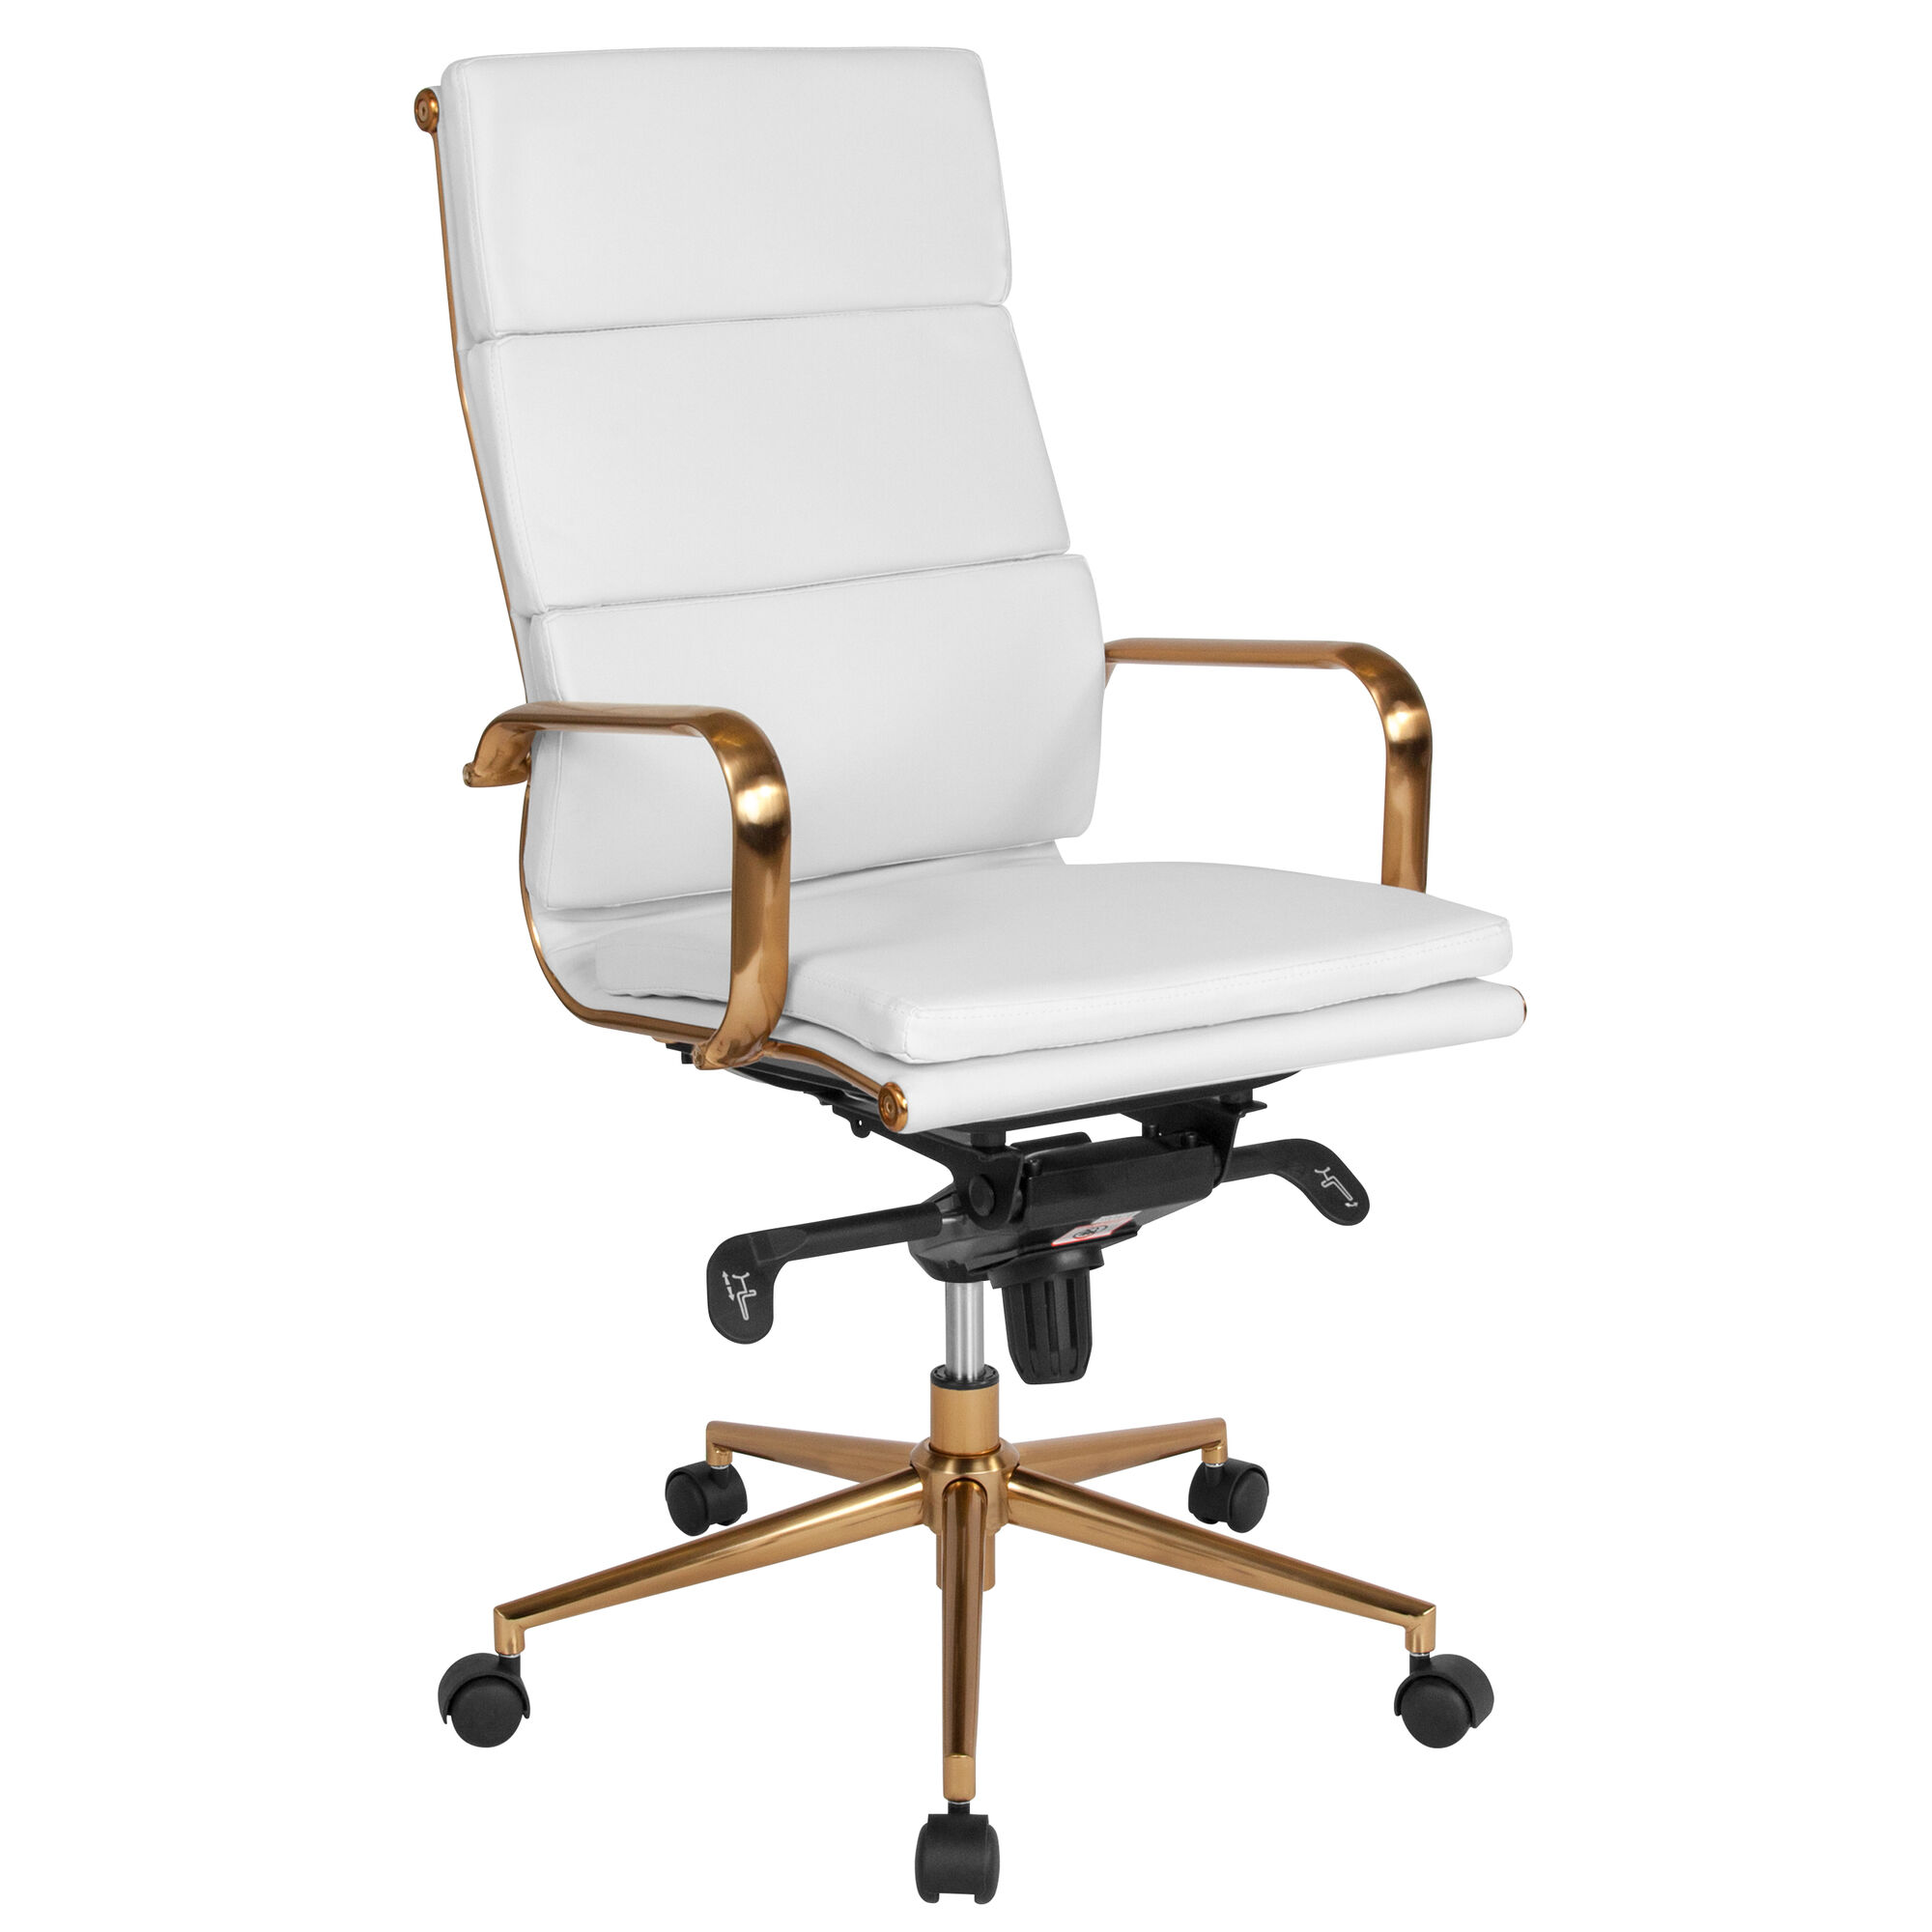 High Back White Leather Executive Swivel Office Chair with Gold Frame,  Synchro-Tilt Mechanism and Arms